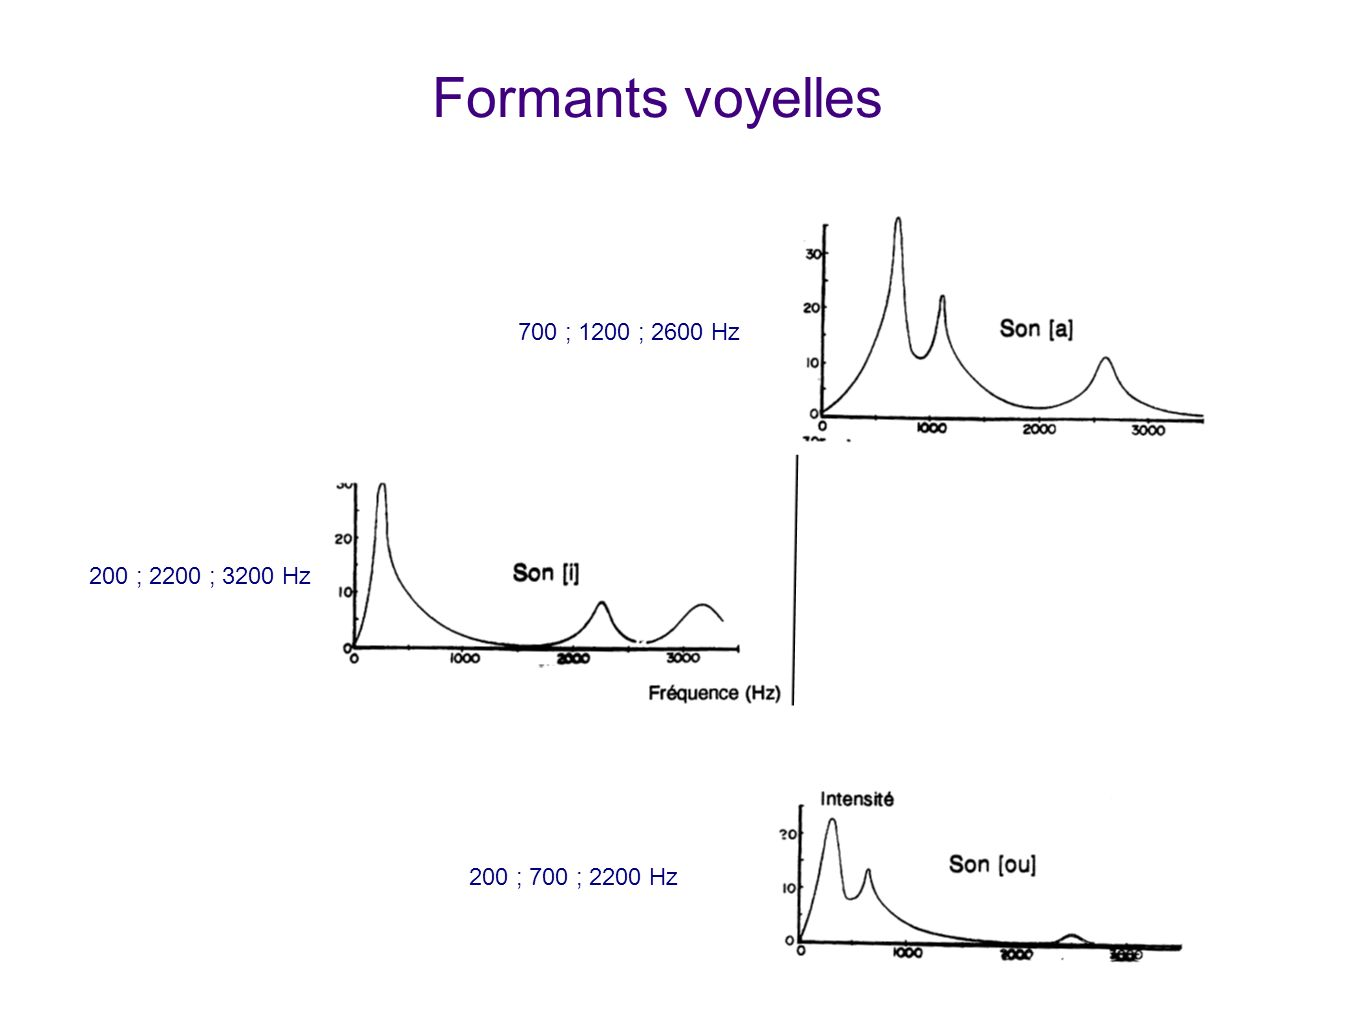 Formants voyelles 700 ; 1200 ; 2600 Hz 200 ; 2200 ; 3200 Hz